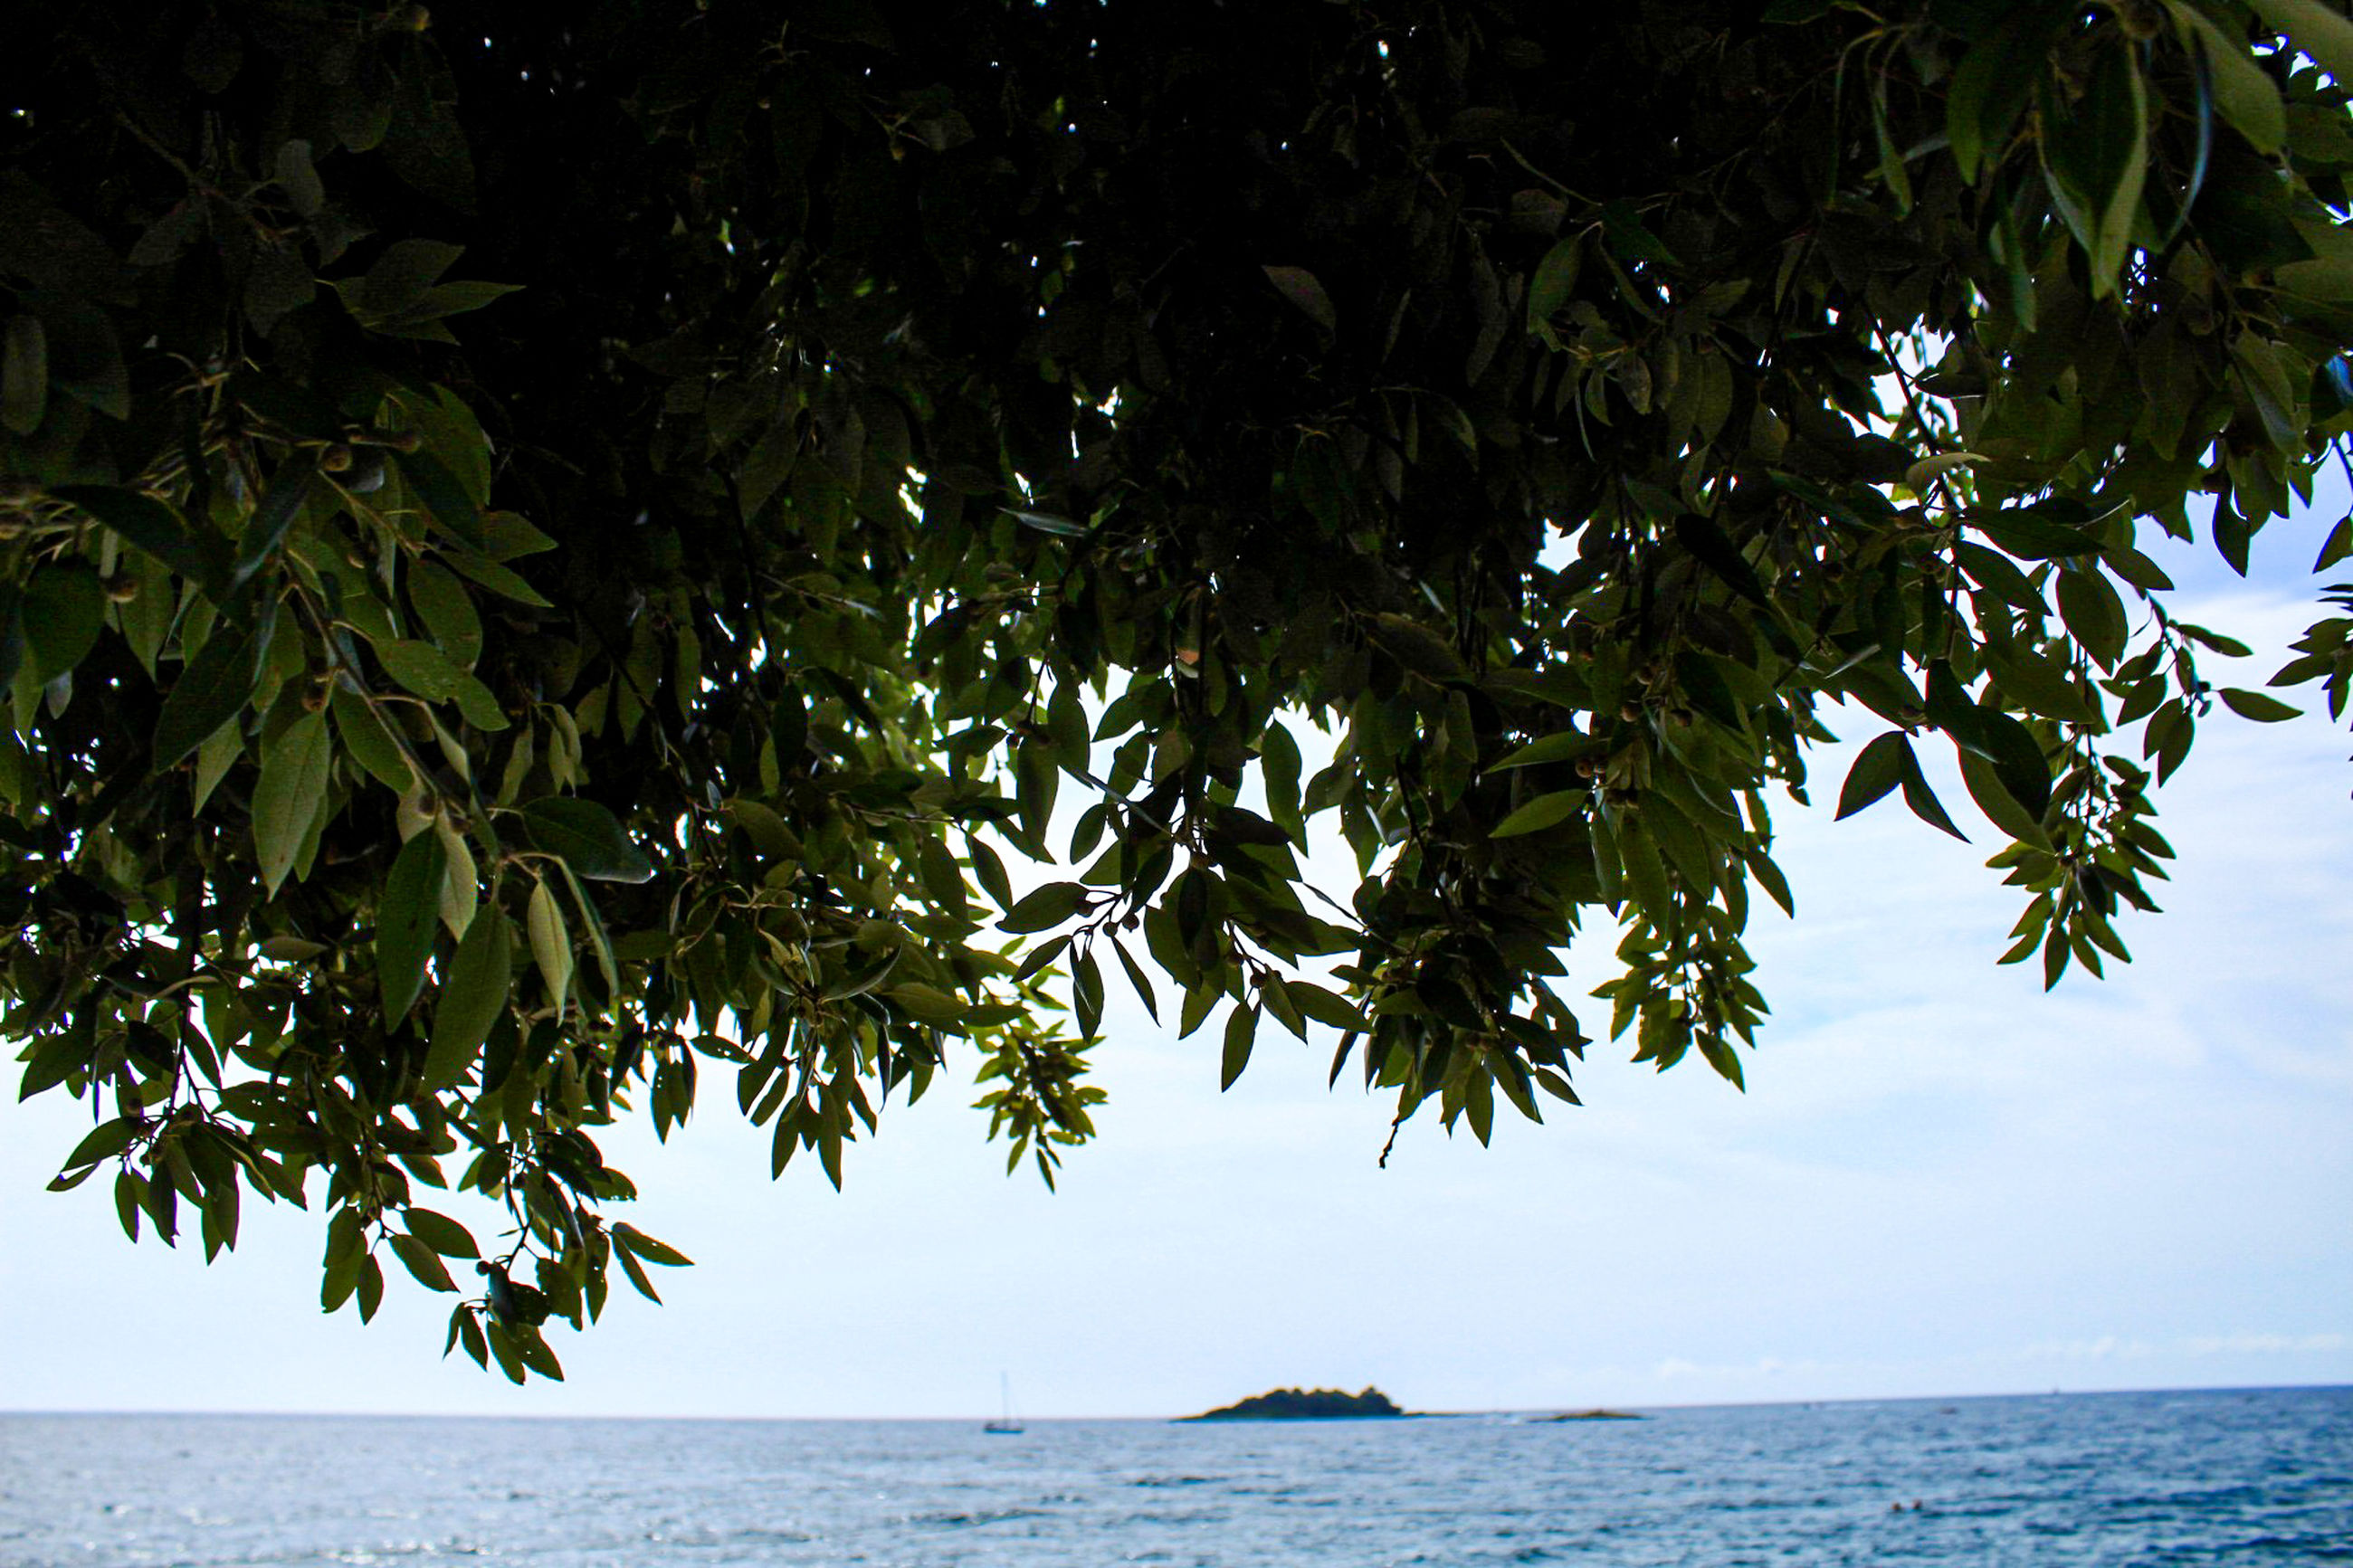 water, sea, tree, plant, beauty in nature, sky, nature, horizon, tranquility, horizon over water, scenics - nature, no people, day, leaf, growth, plant part, tranquil scene, outdoors, land